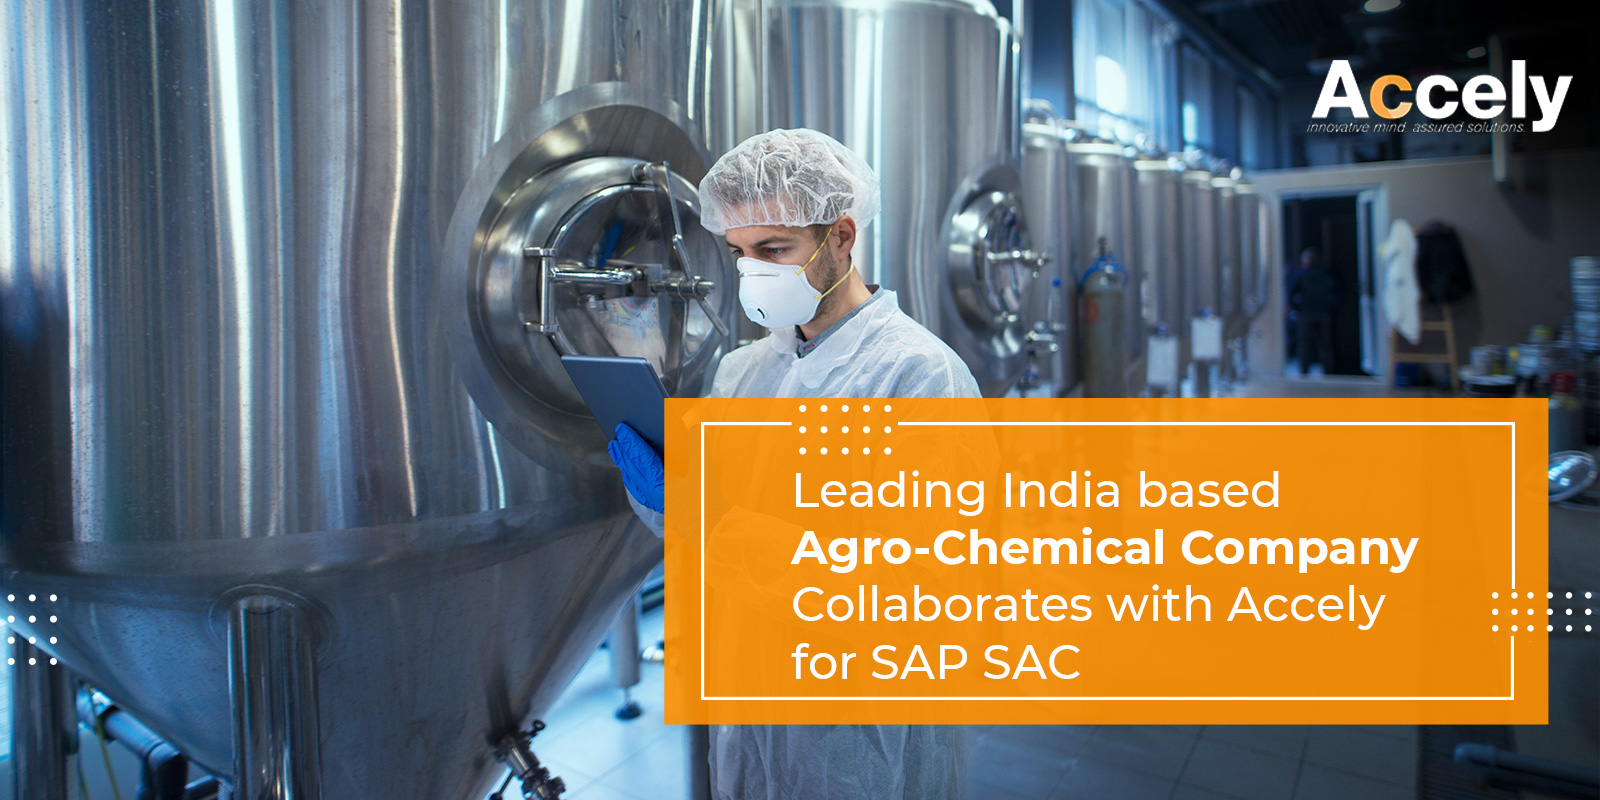 Leading India-based Agro Chemical Company Collaborates with Accely for SAP SAC